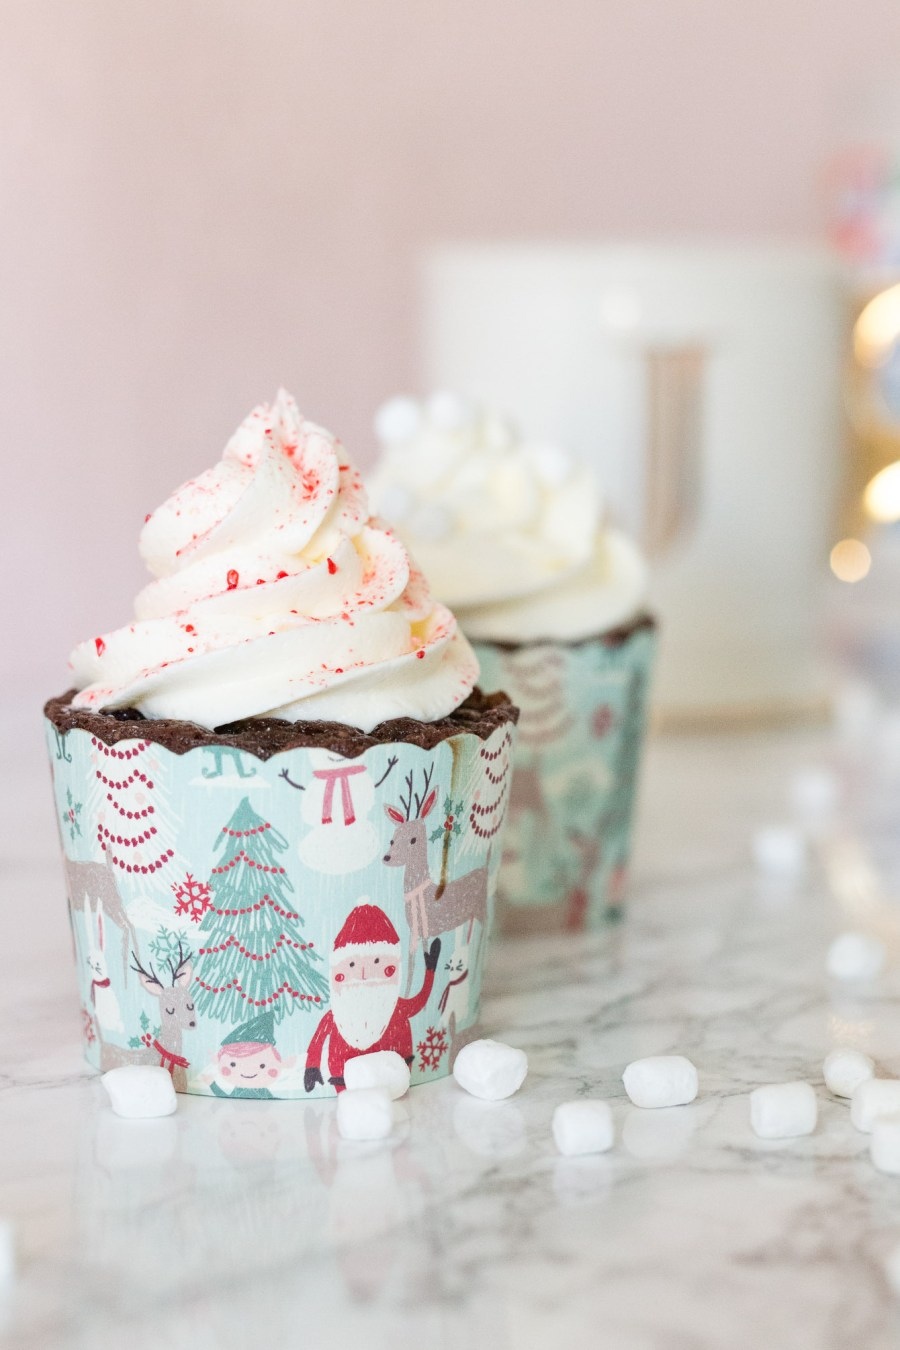 peppermint hot chocolate cupcakes with marshmallow buttercream and candy cane sprinkles for holiday party dessert